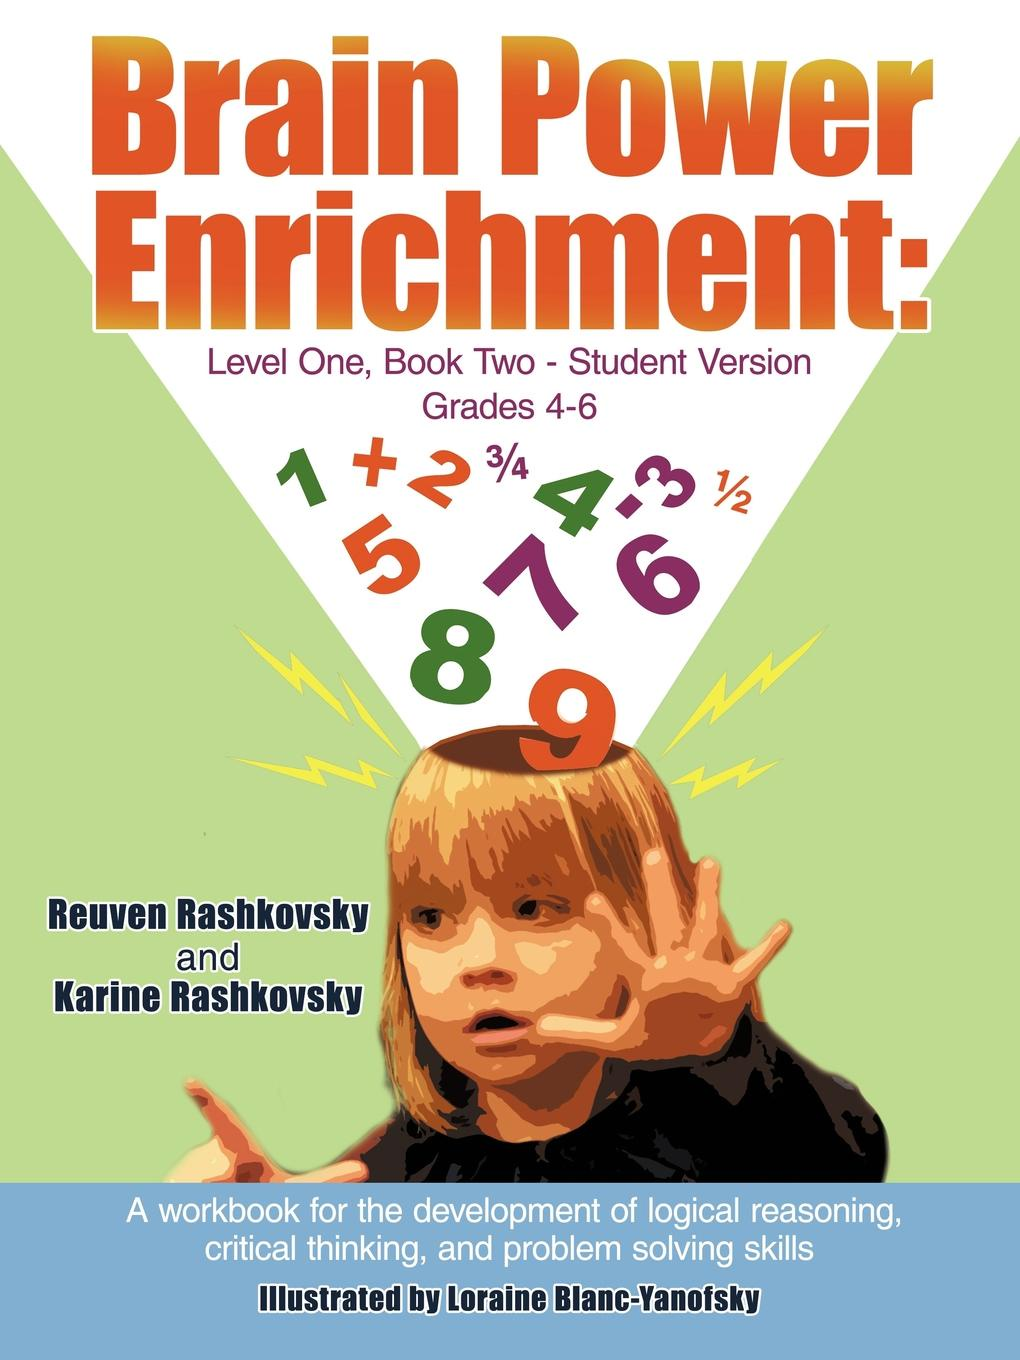 Brain-Power-Enrichment-Level-One-Book-Two-Student-Version-Grades-4-6--A-workbook-for-the-development-of-logical-reasoning-critical-thinking-and-proble